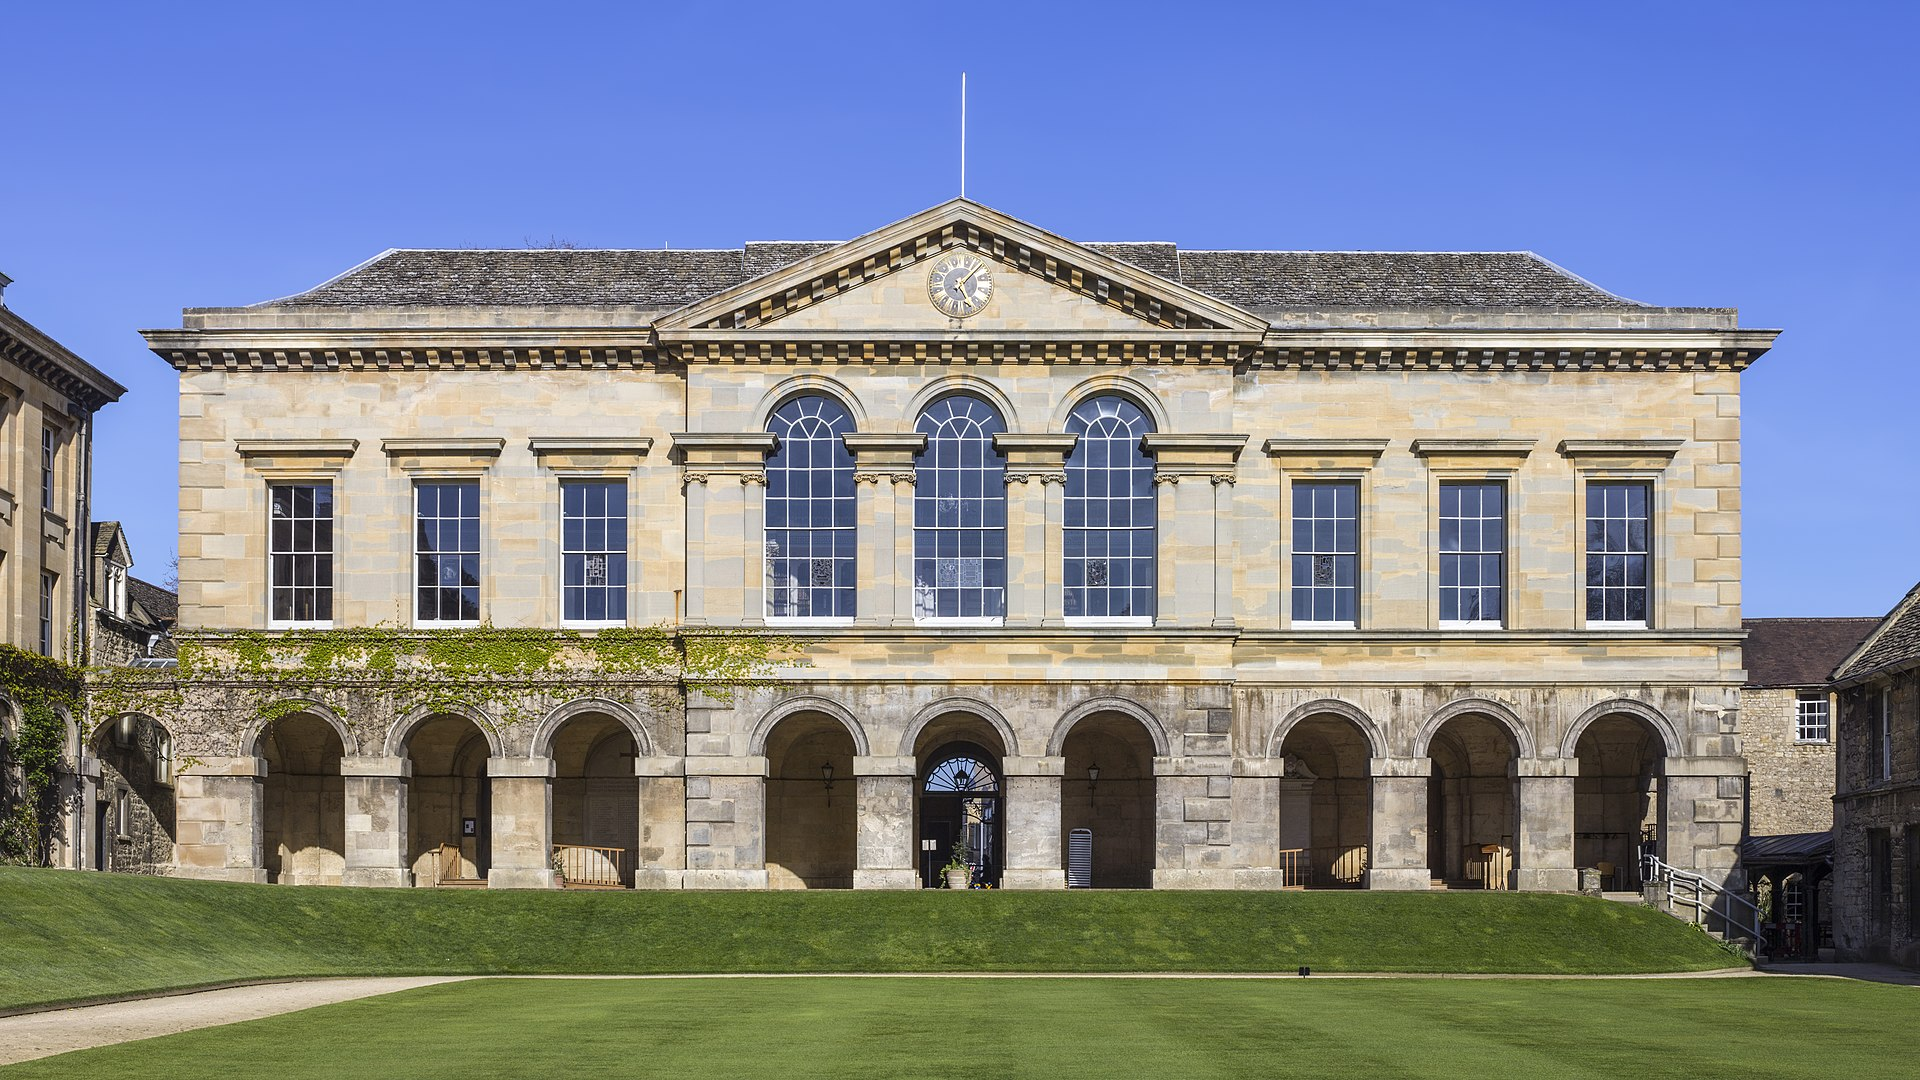 1920px-UK-2014-Oxford-Worcester_College_02.jpg